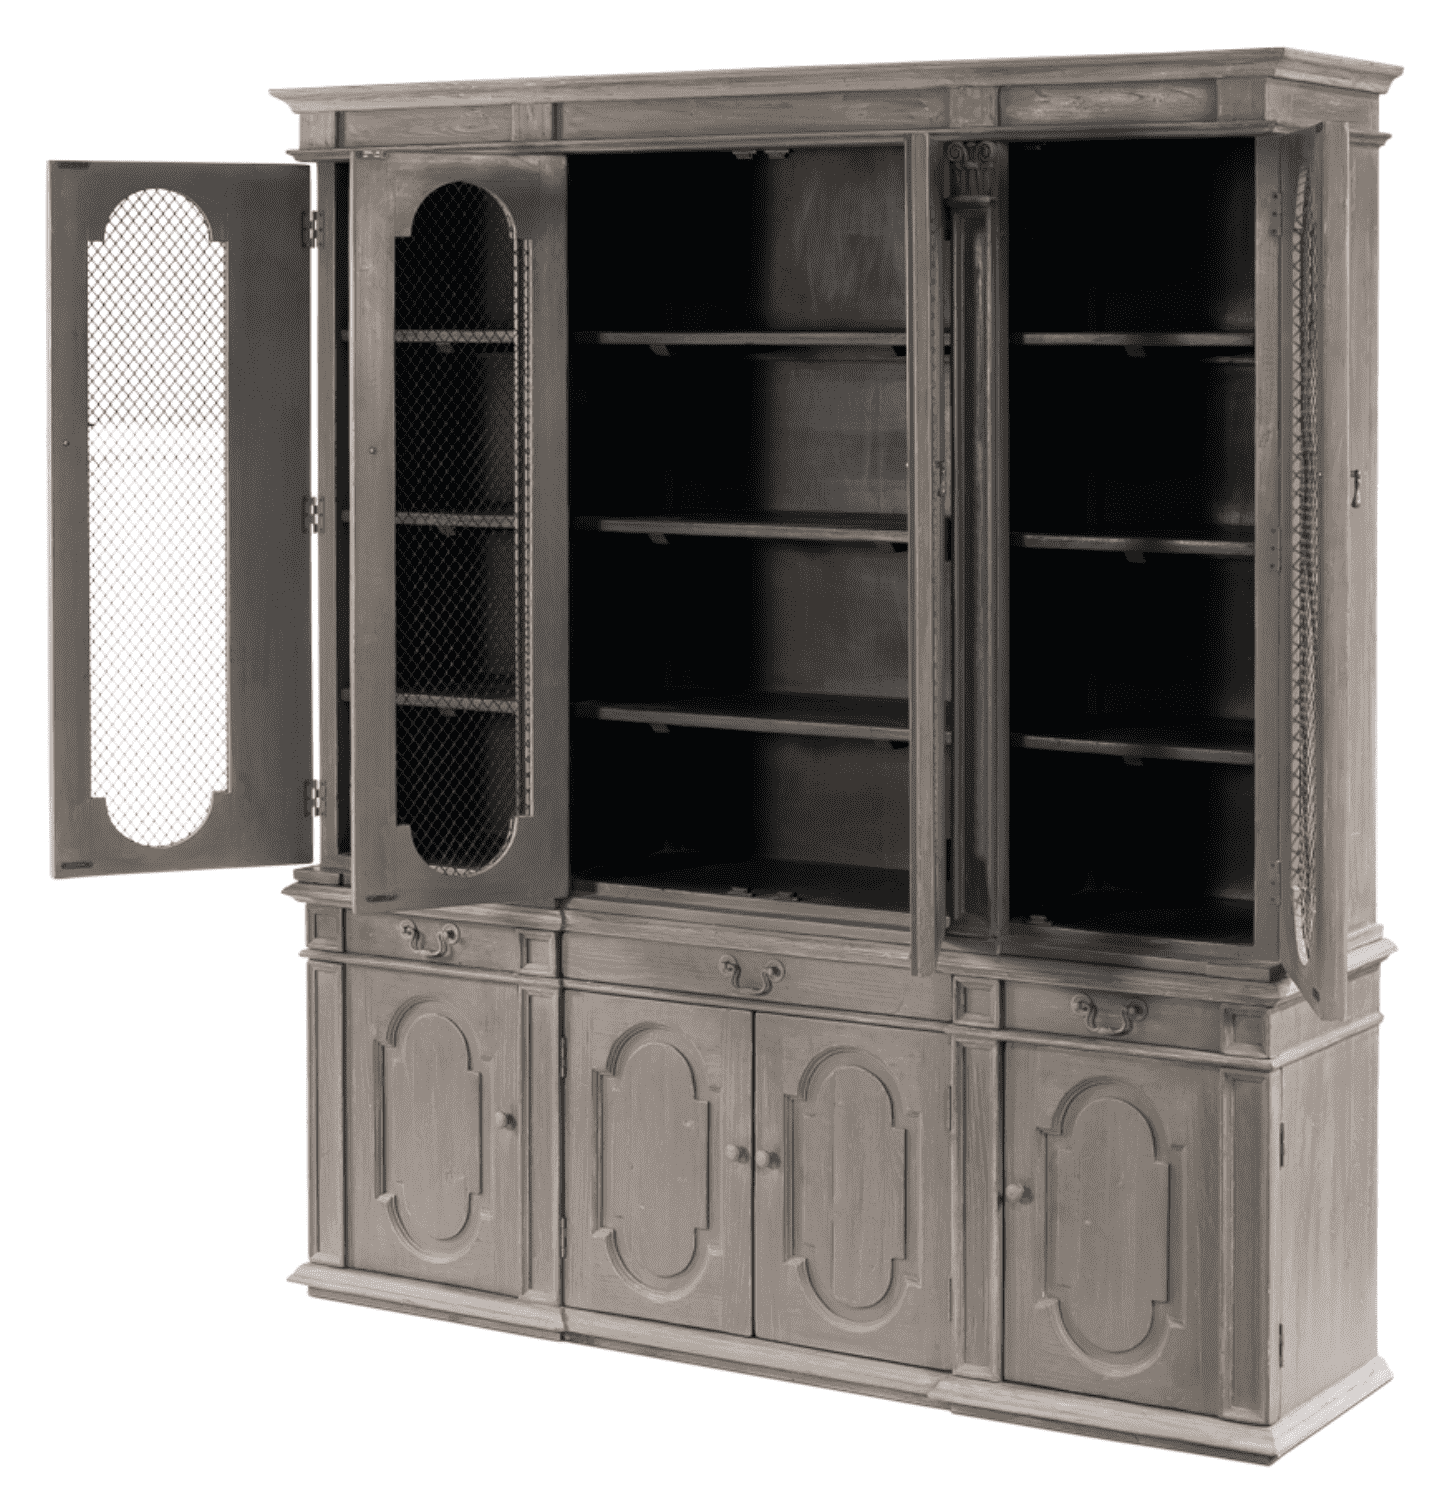 Ashburne Cabinet   Grey China Cabinet With Steel Mesh   Sarah Virginia Home